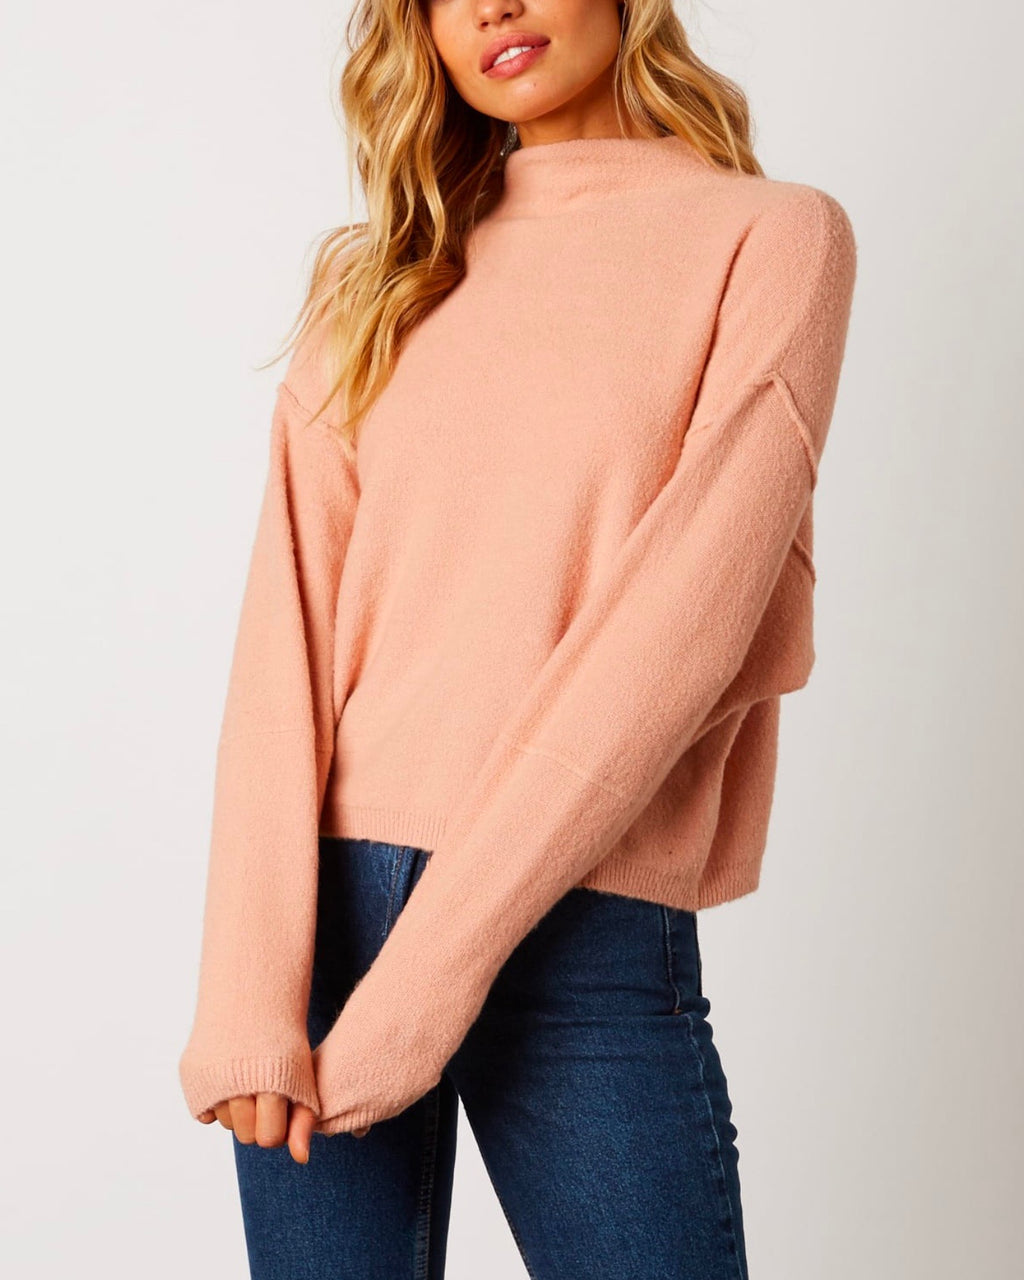 Cotton Candy LA - Mock Neck Ribbed Trim Dropped Shoulders Sweater in Blush